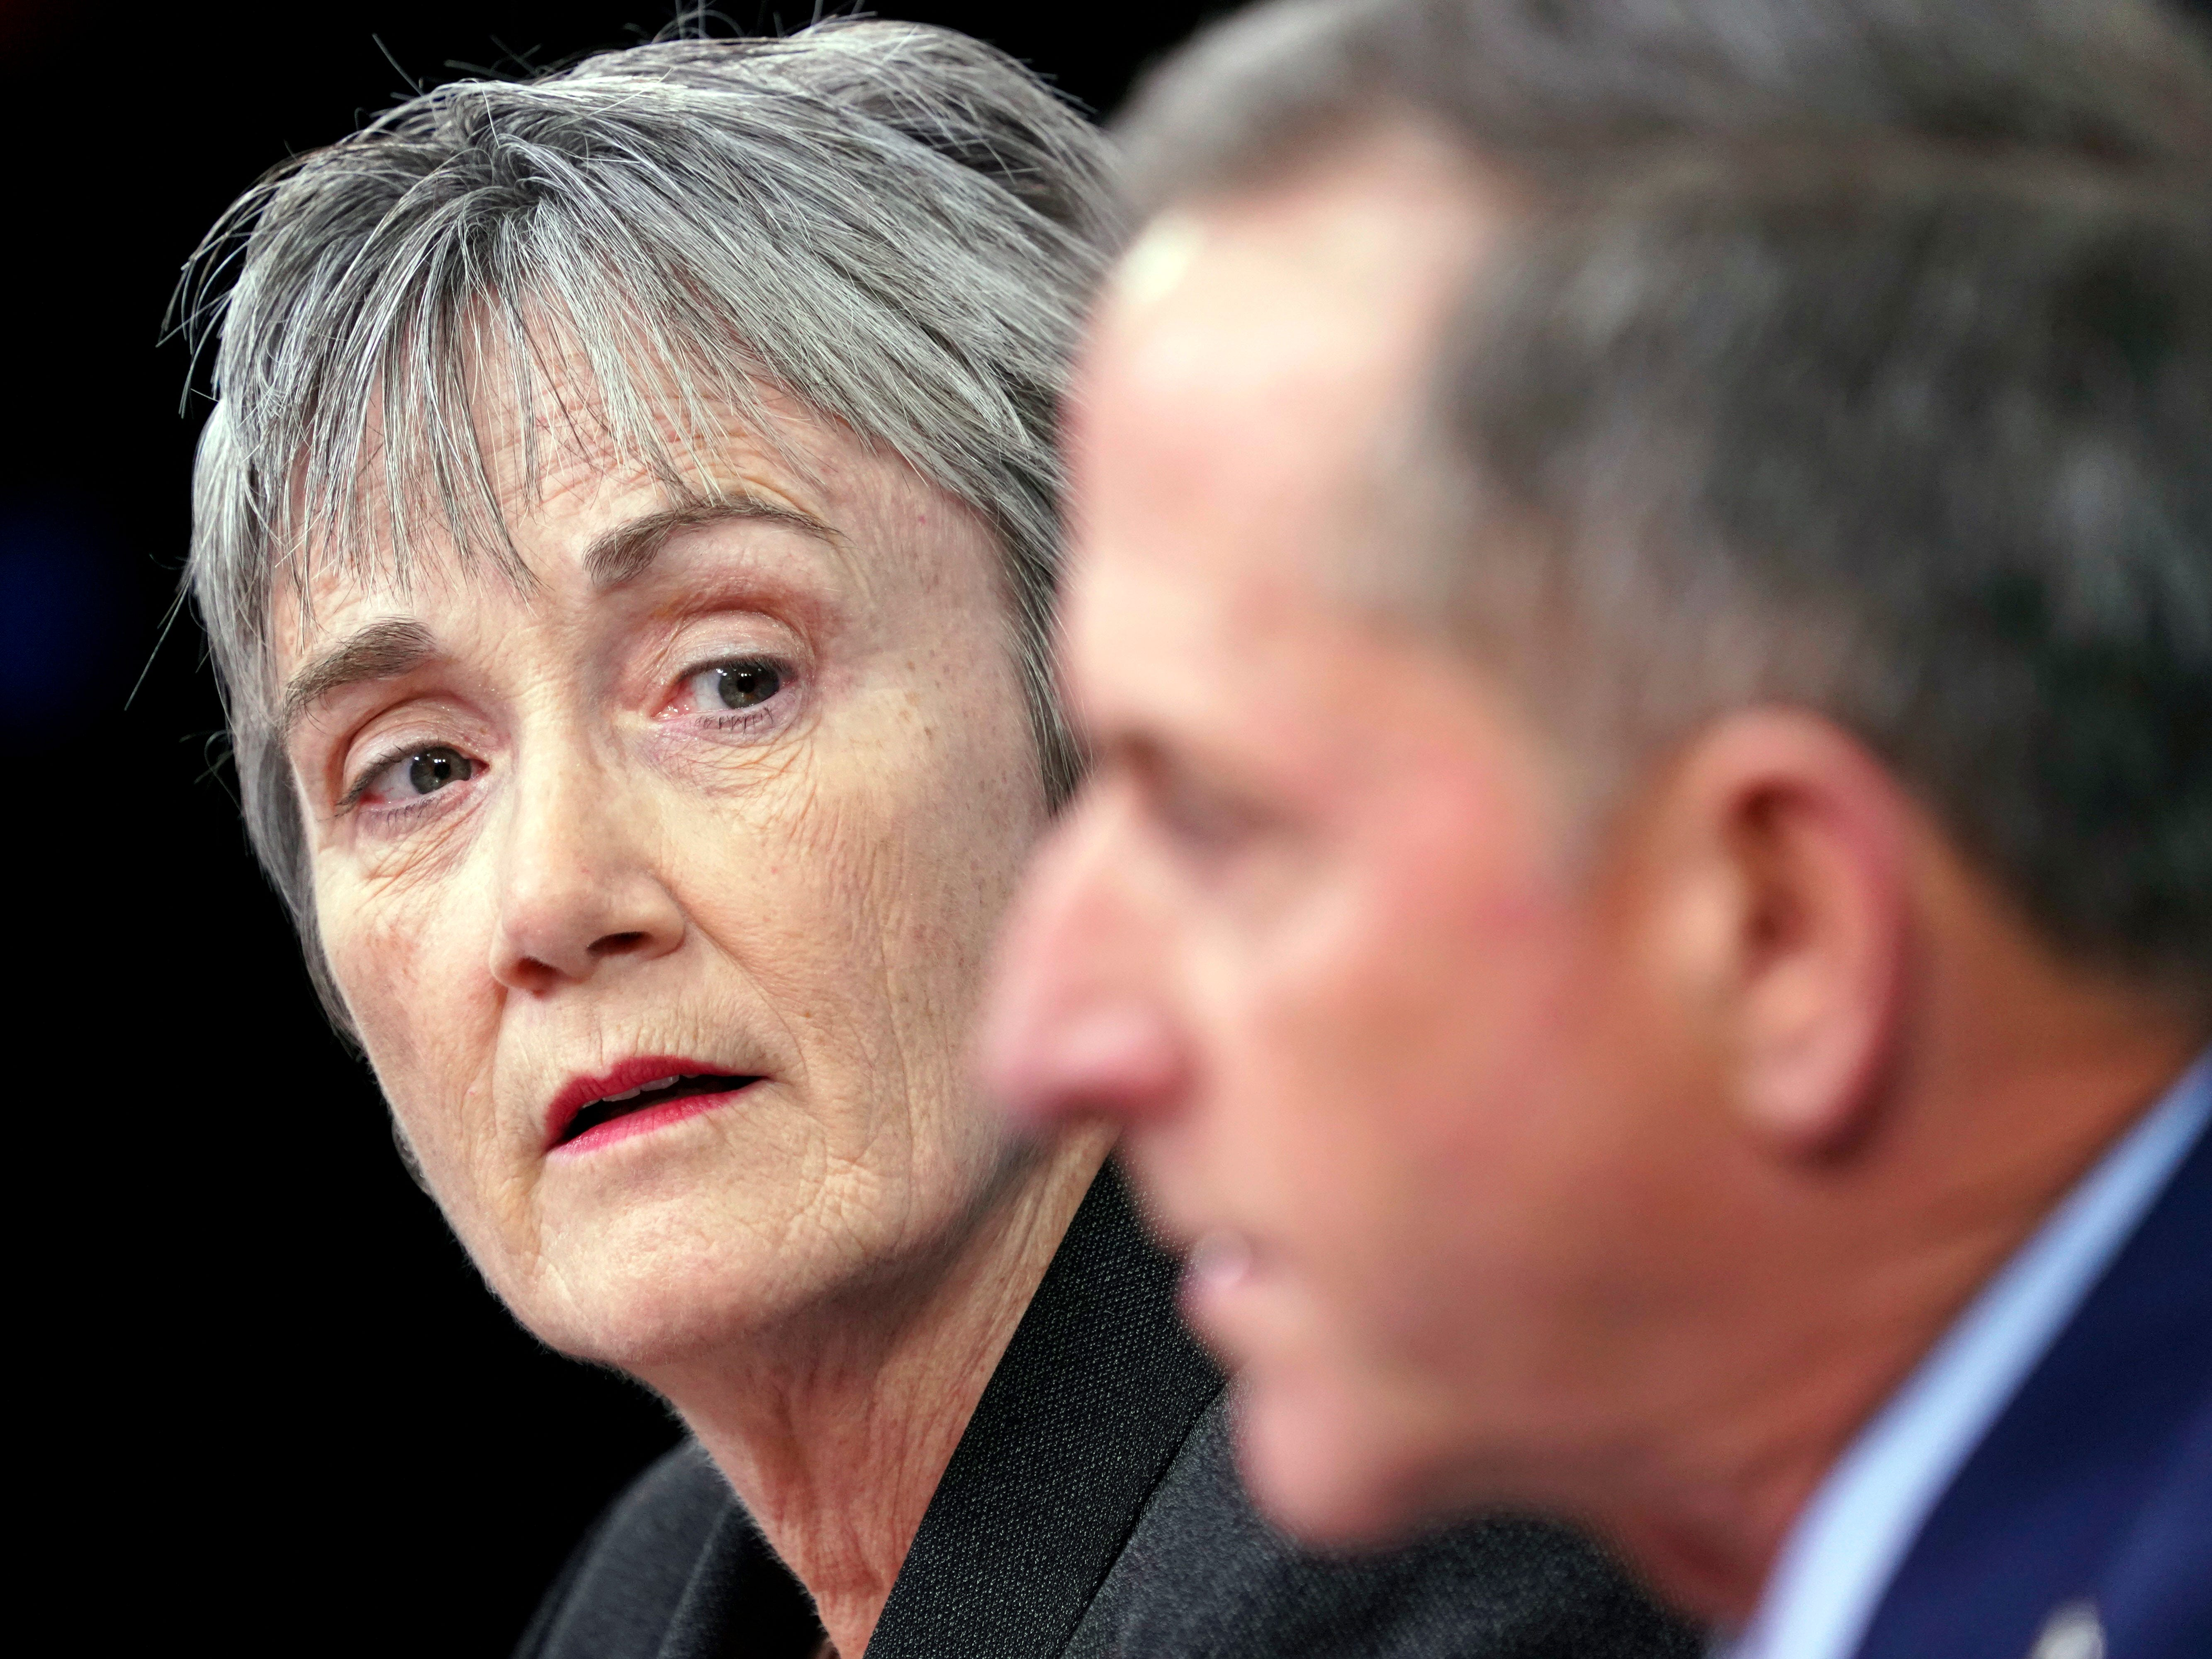 Air Force Secretary Heather Wilson, left, listens to Gen. David L. Goldfein, right, Chief of Staff of the U.S. Air Force at the Pentagon, Thursday, Nov. 9, 2017.